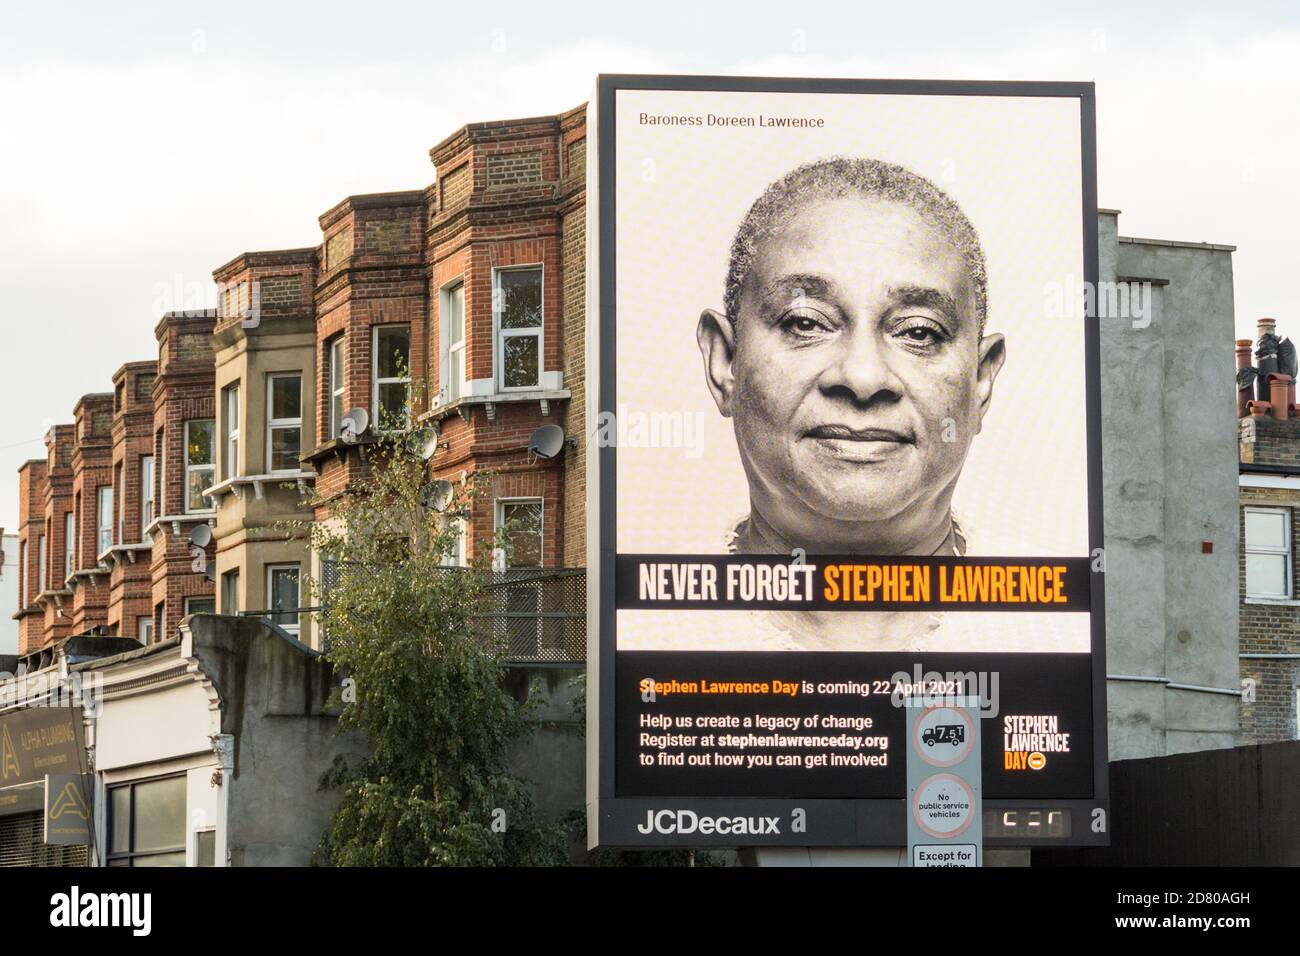 Never Forget Stephen Lawrence electronic billboard in Wandsworth, southwest London, UK Stock Photo